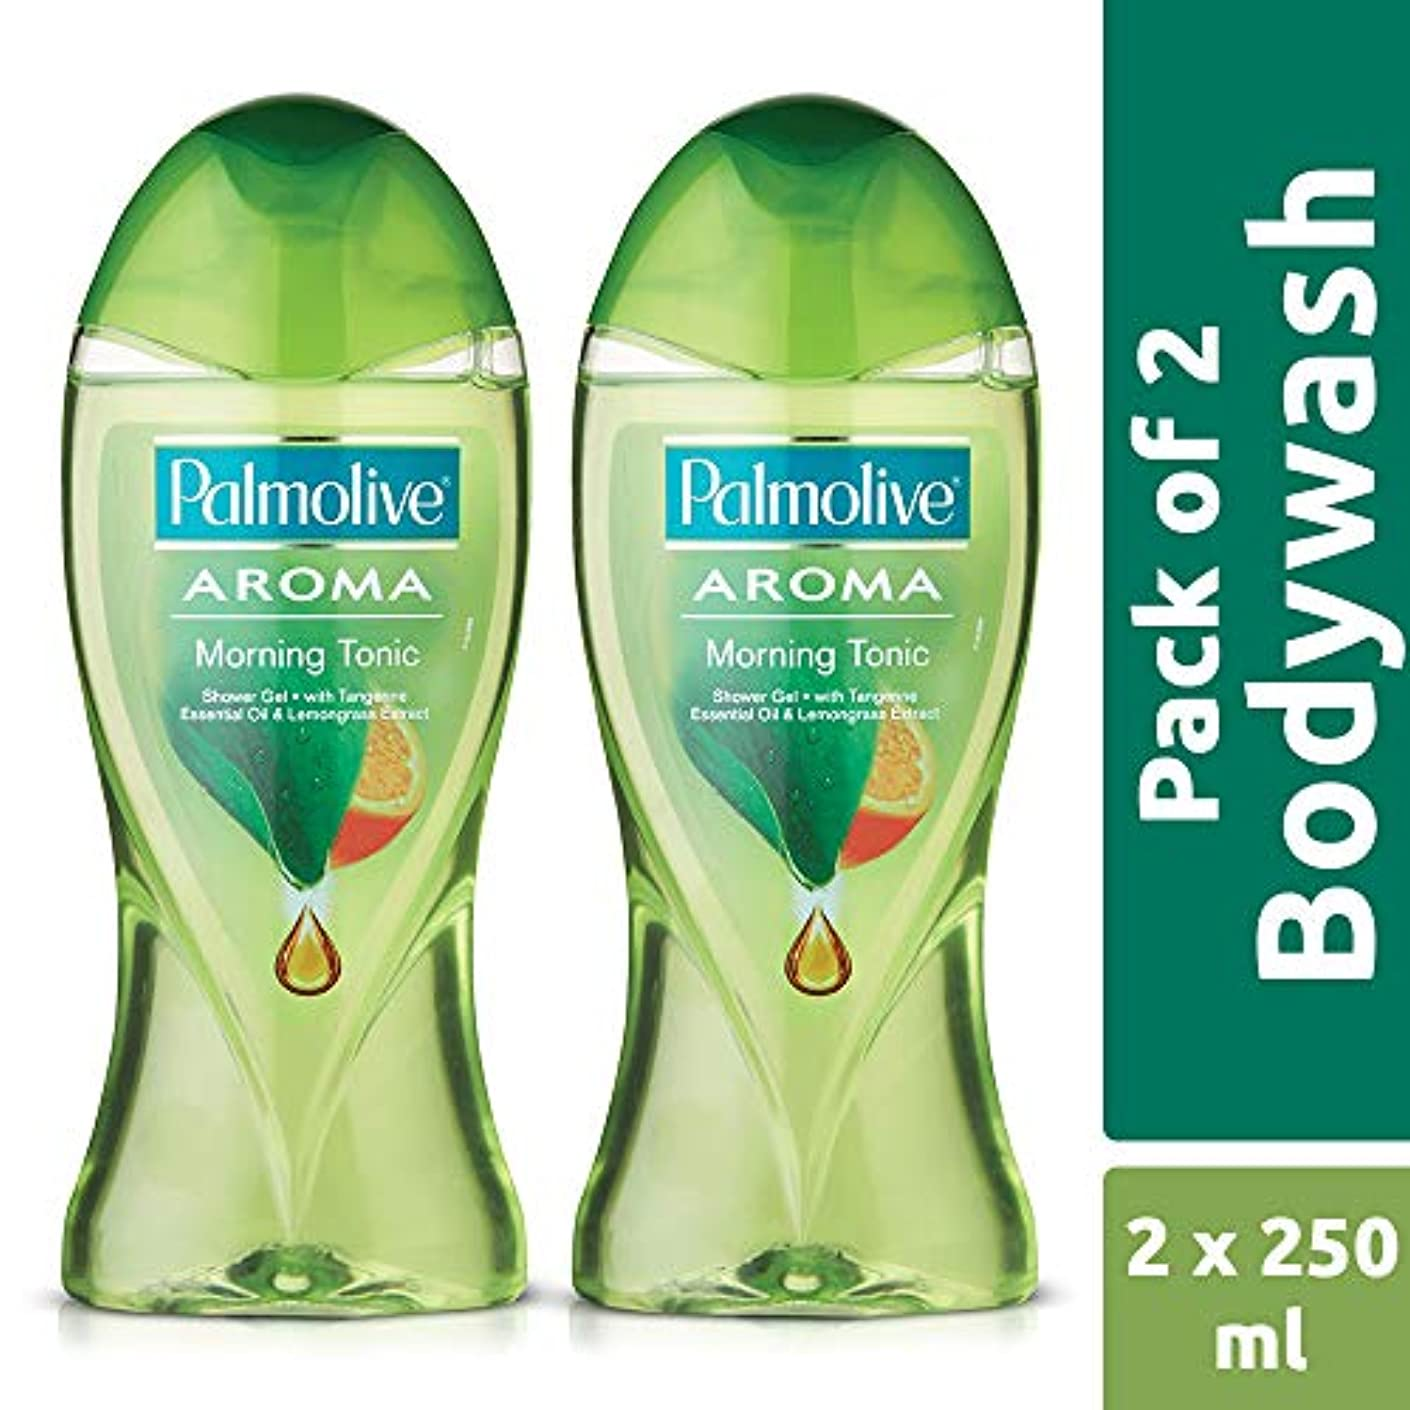 高価なはいからかうPalmolive Bodywash Aroma Morning Tonic Shower Gel - 250ml (Pack of 2)